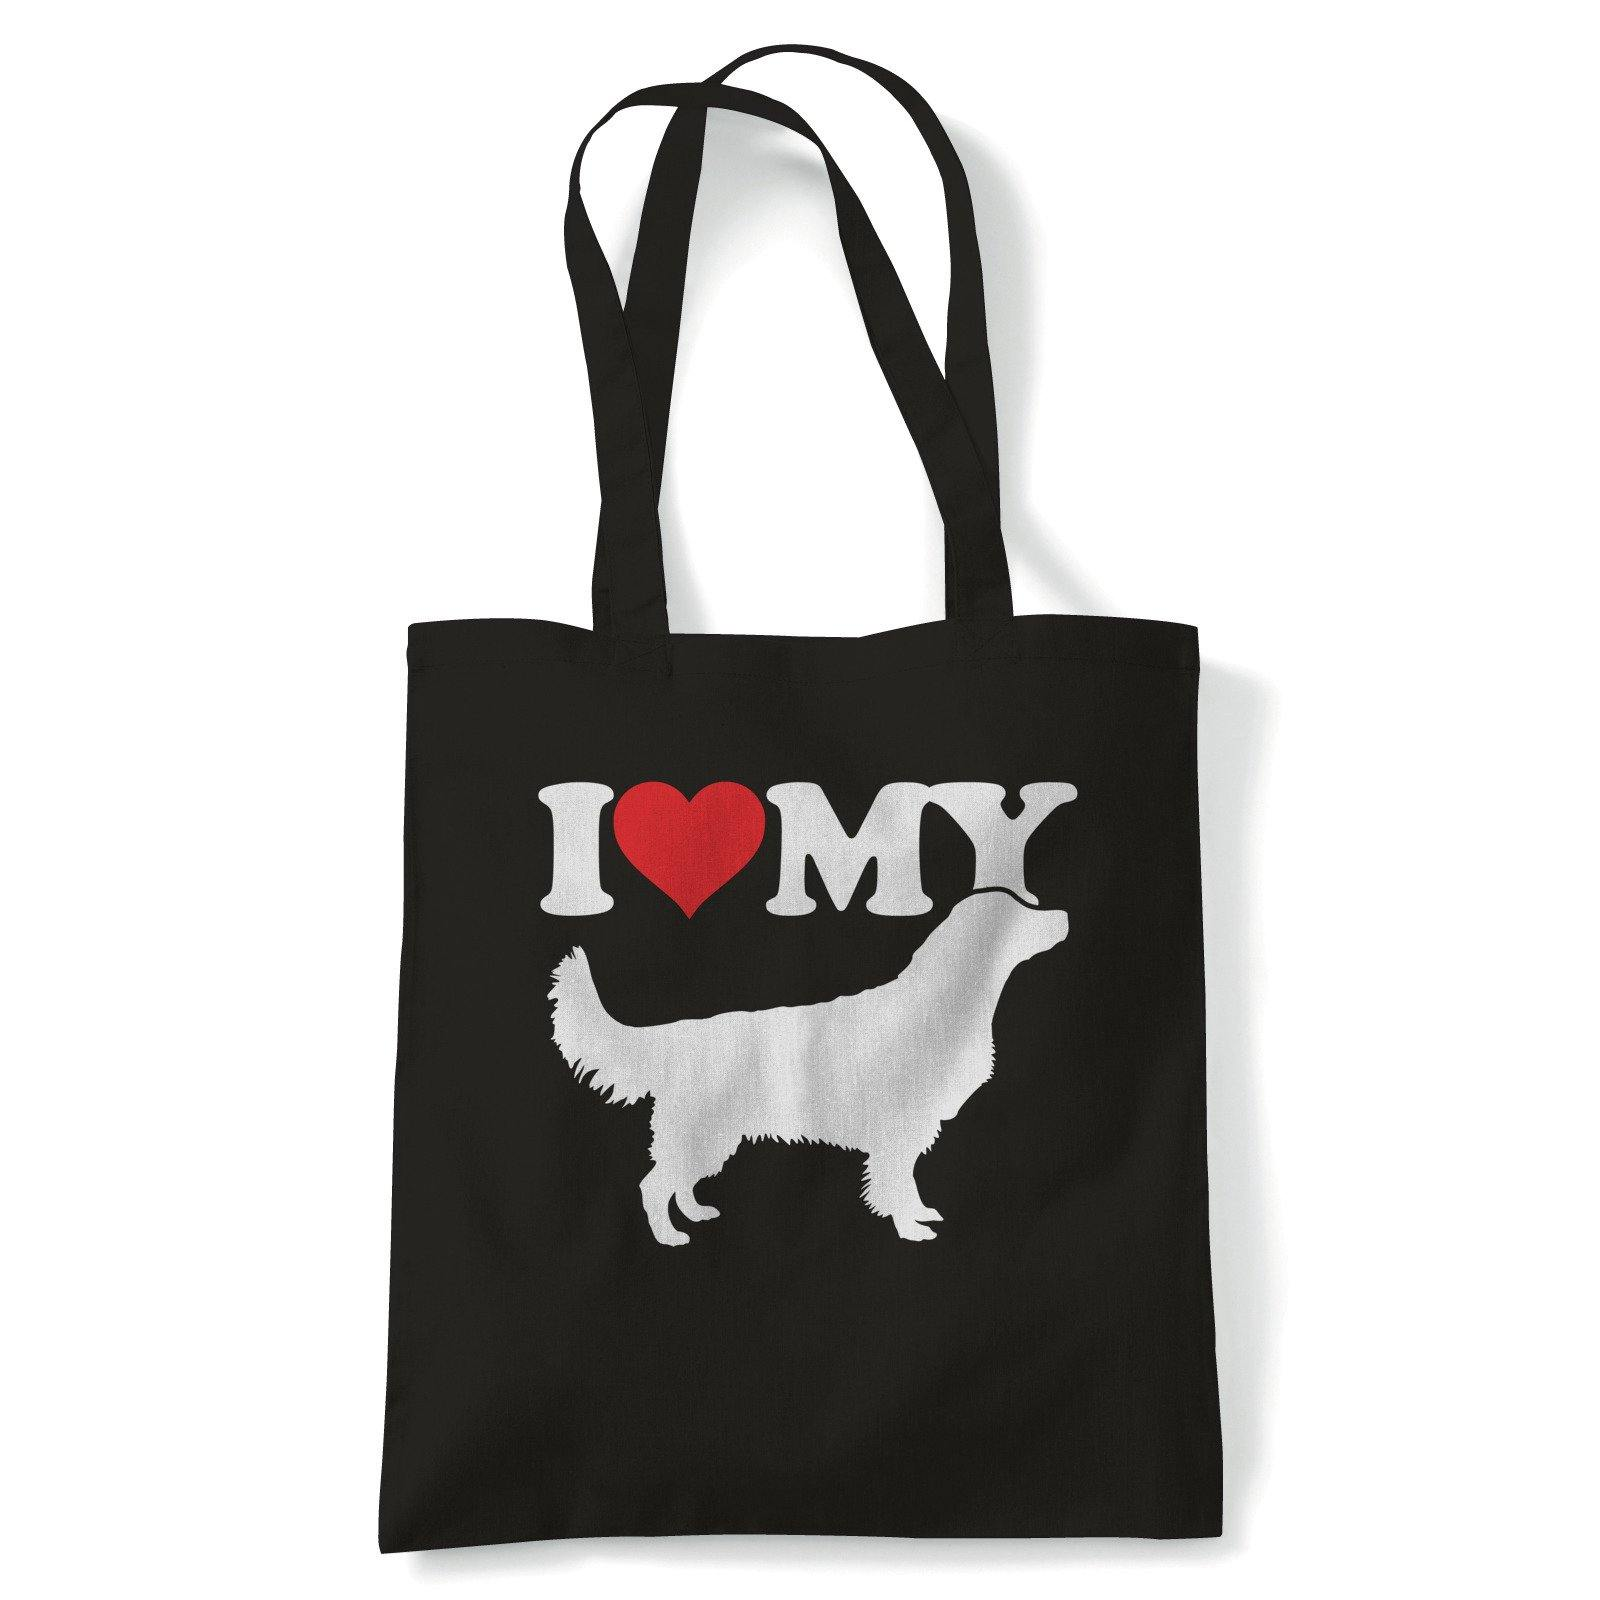 I Love My Golden Retriever Tote | Dog Gift Fur Baby Lover Owner Mans Best Friend | Reusable Shopping Cotton Canvas Long Handled Natural Shopper Eco-Friendly Fashion